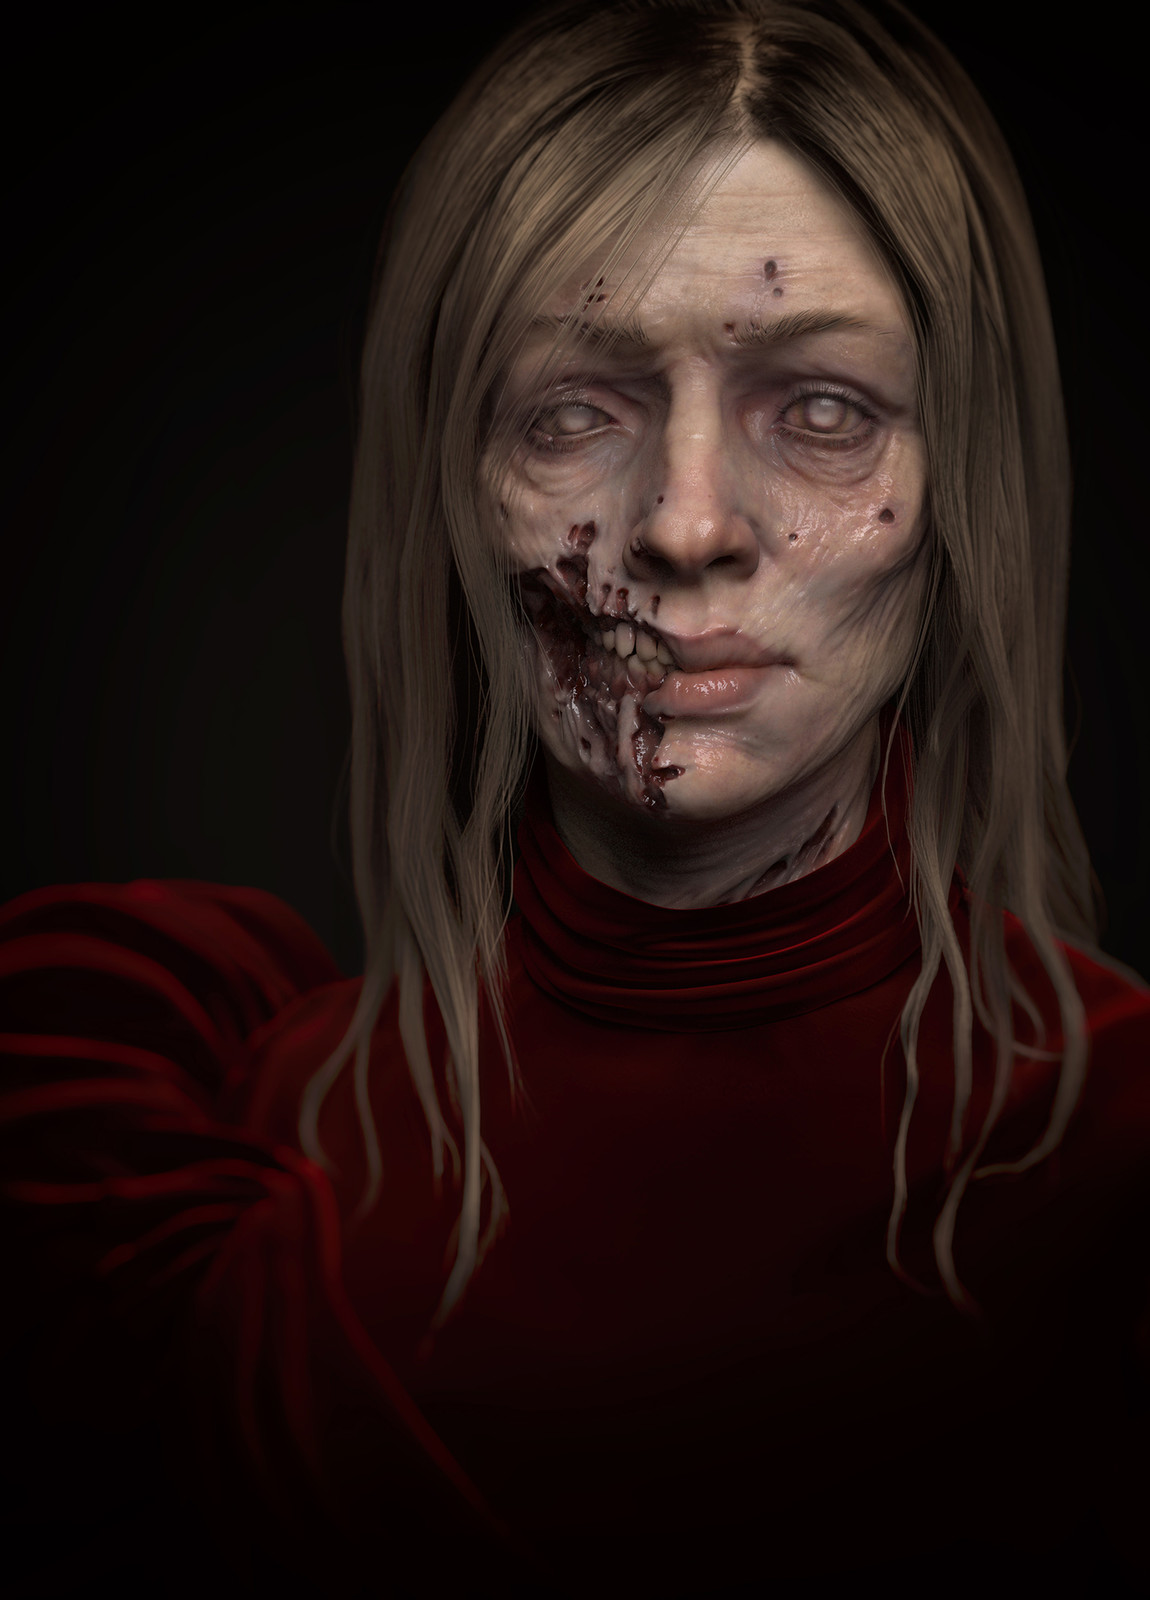 Zombie lady experiment